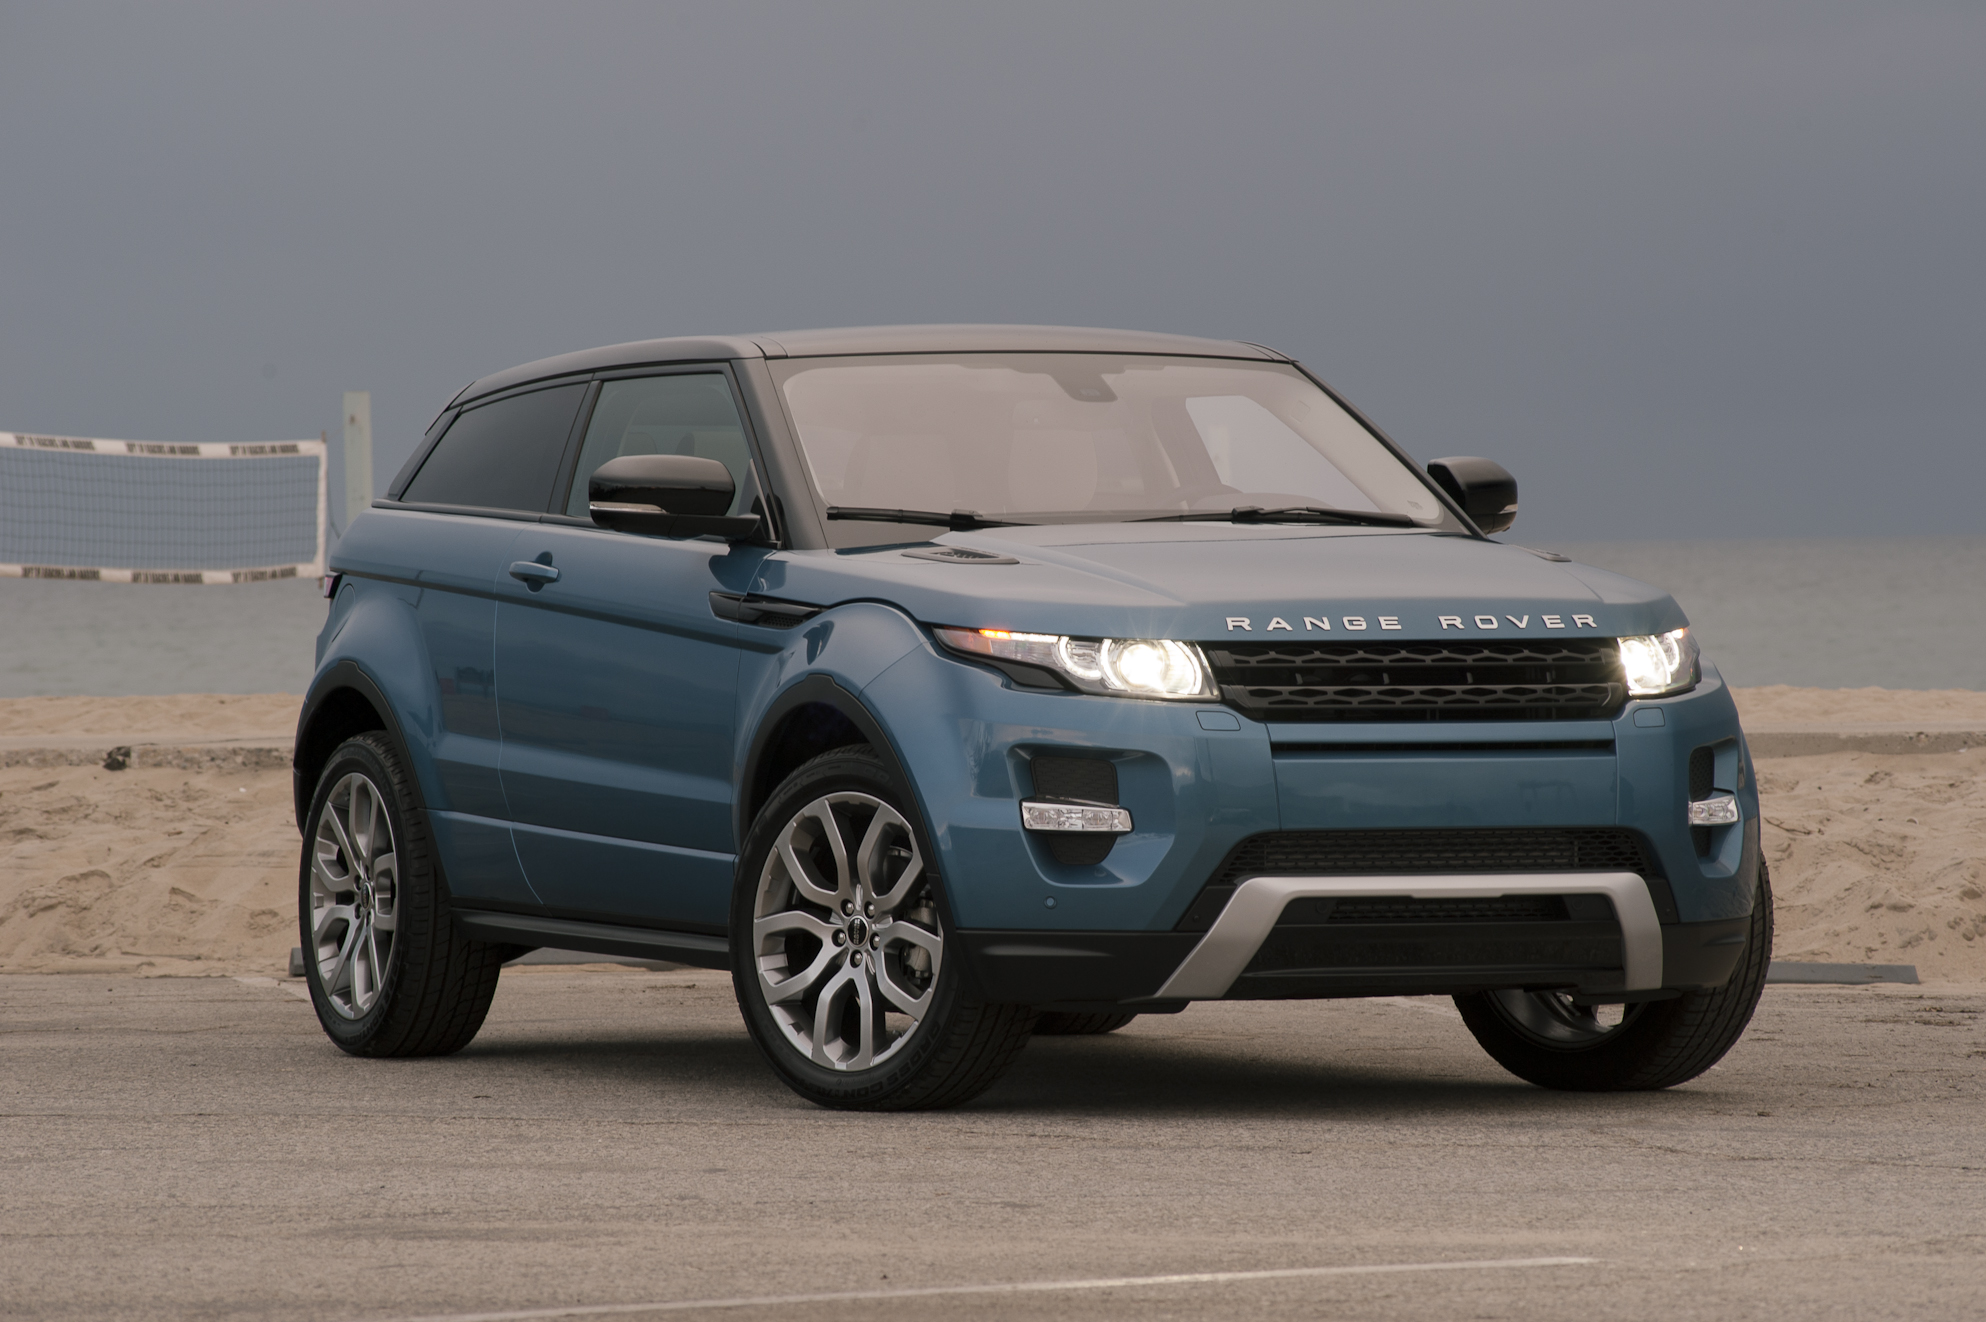 2012 land rover range rover evoque photos informations articles. Black Bedroom Furniture Sets. Home Design Ideas